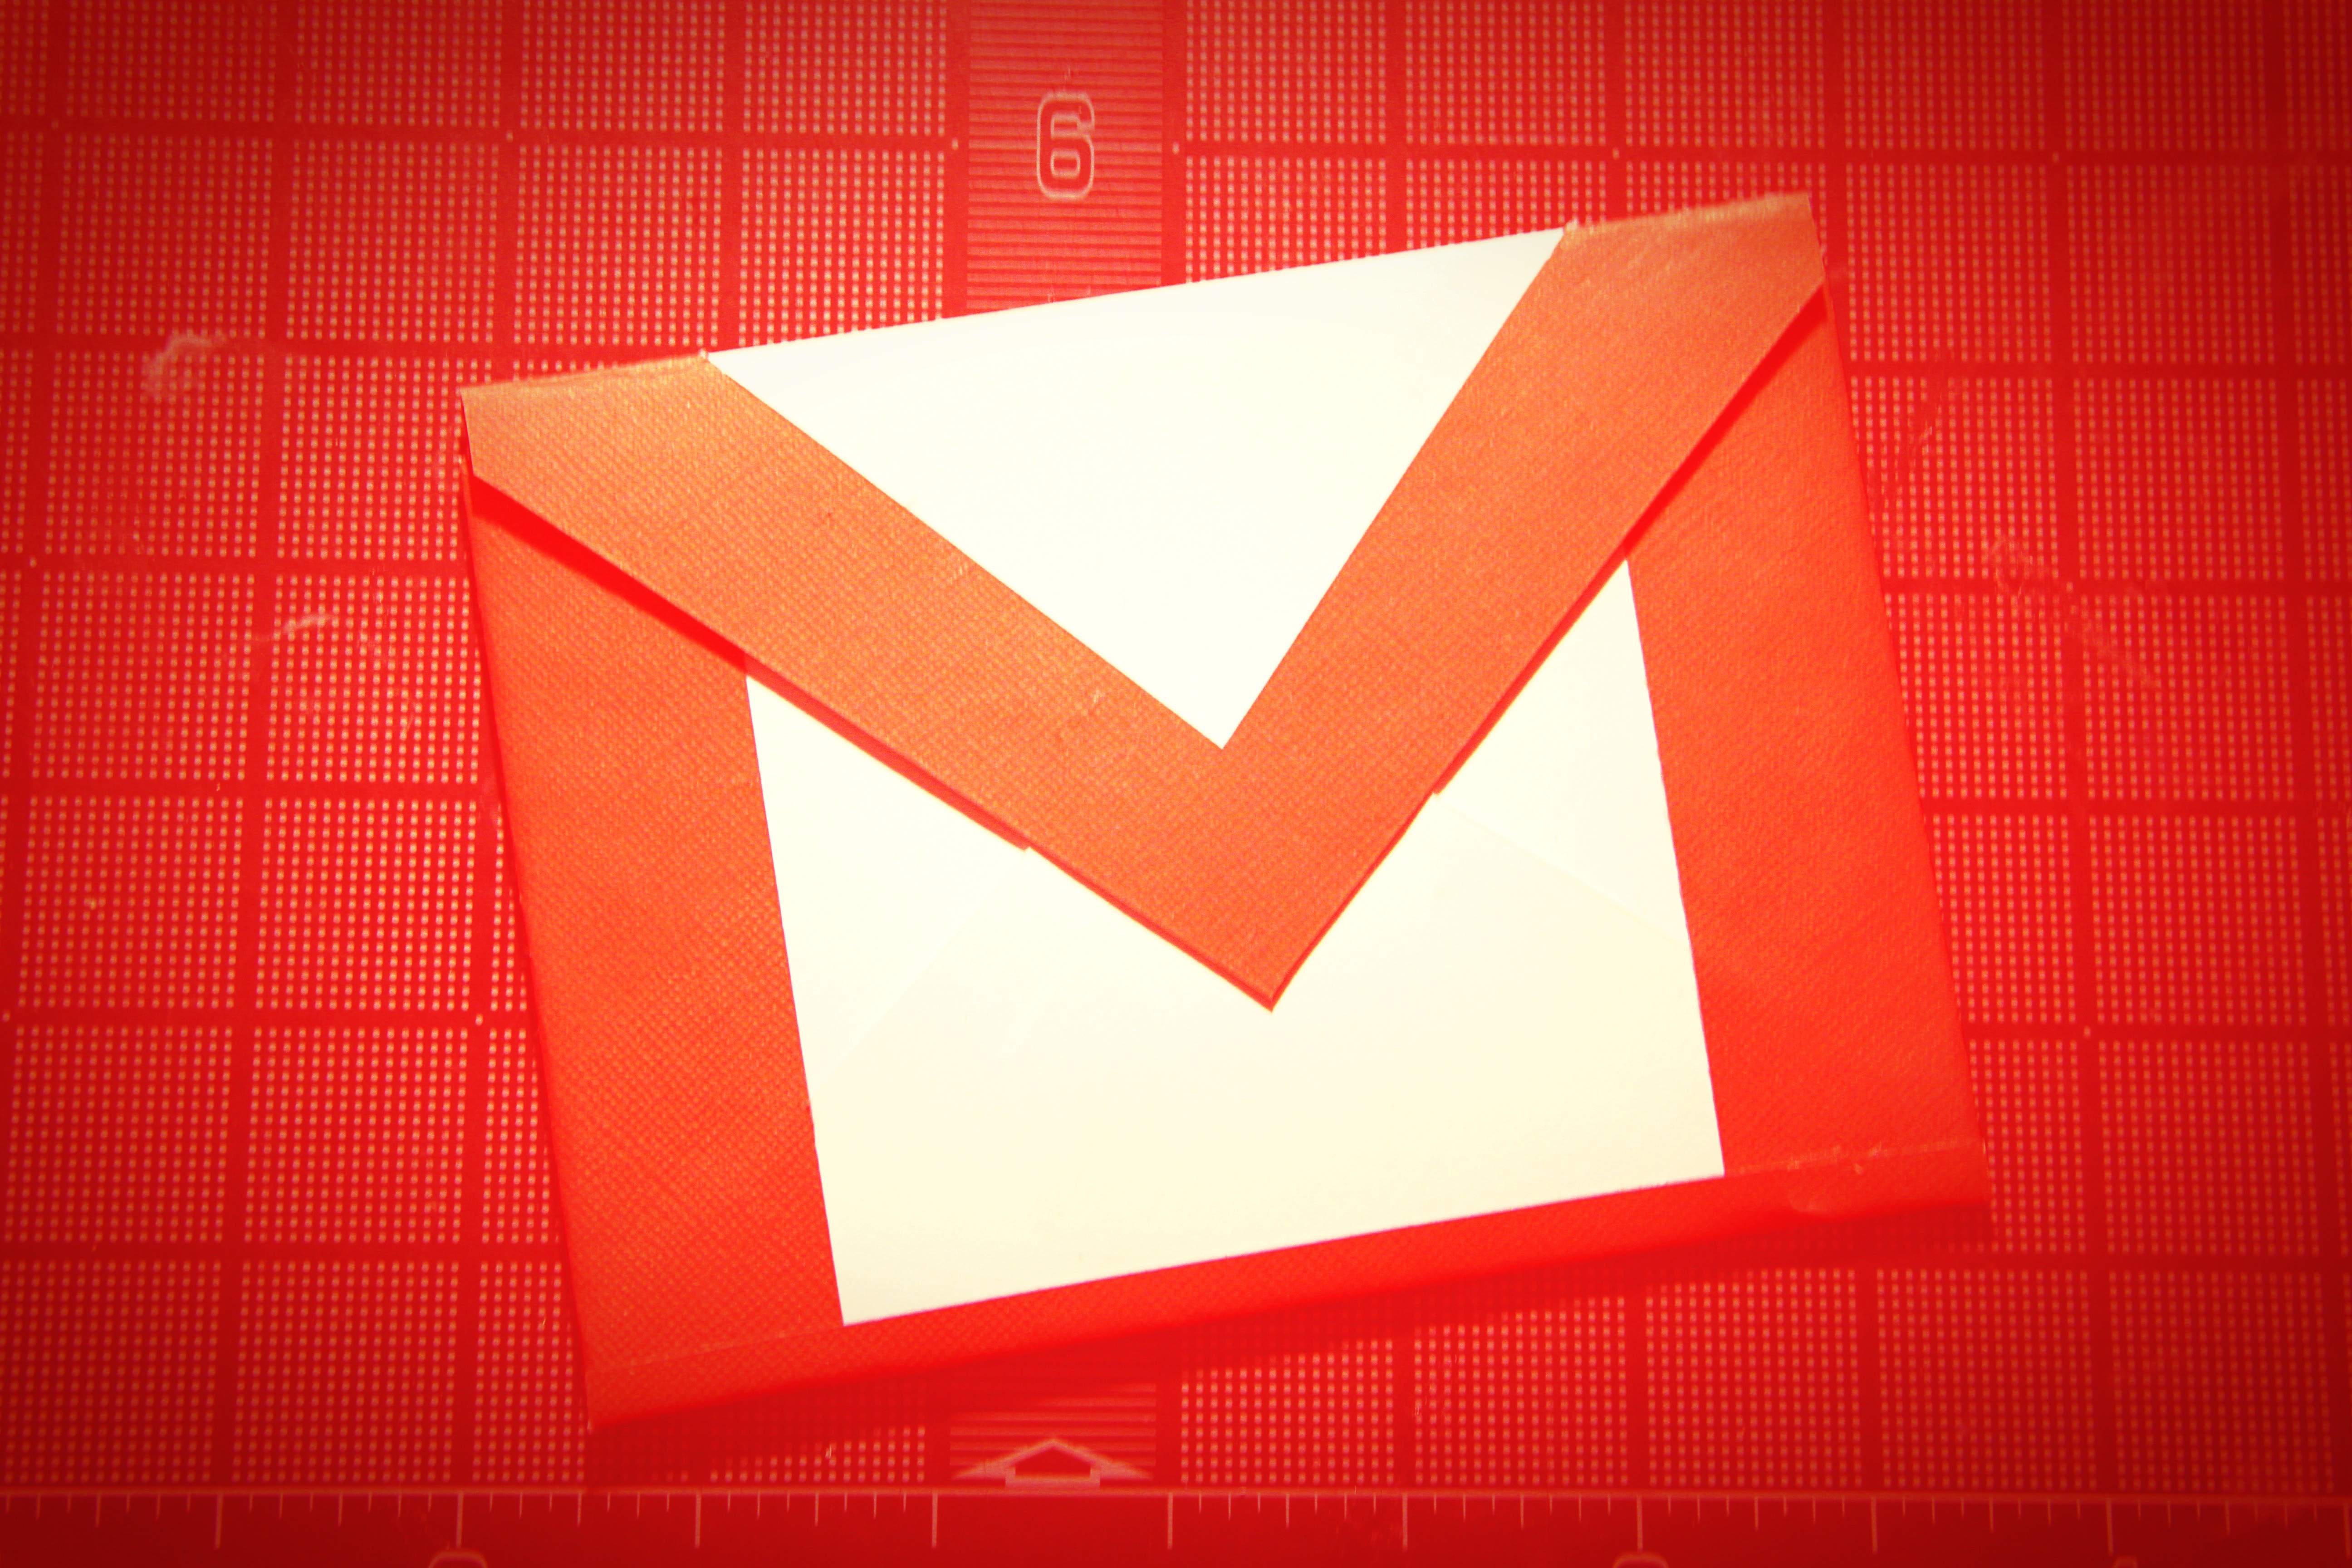 Google Open Sources Two Tools To Import Mail Into Gmail